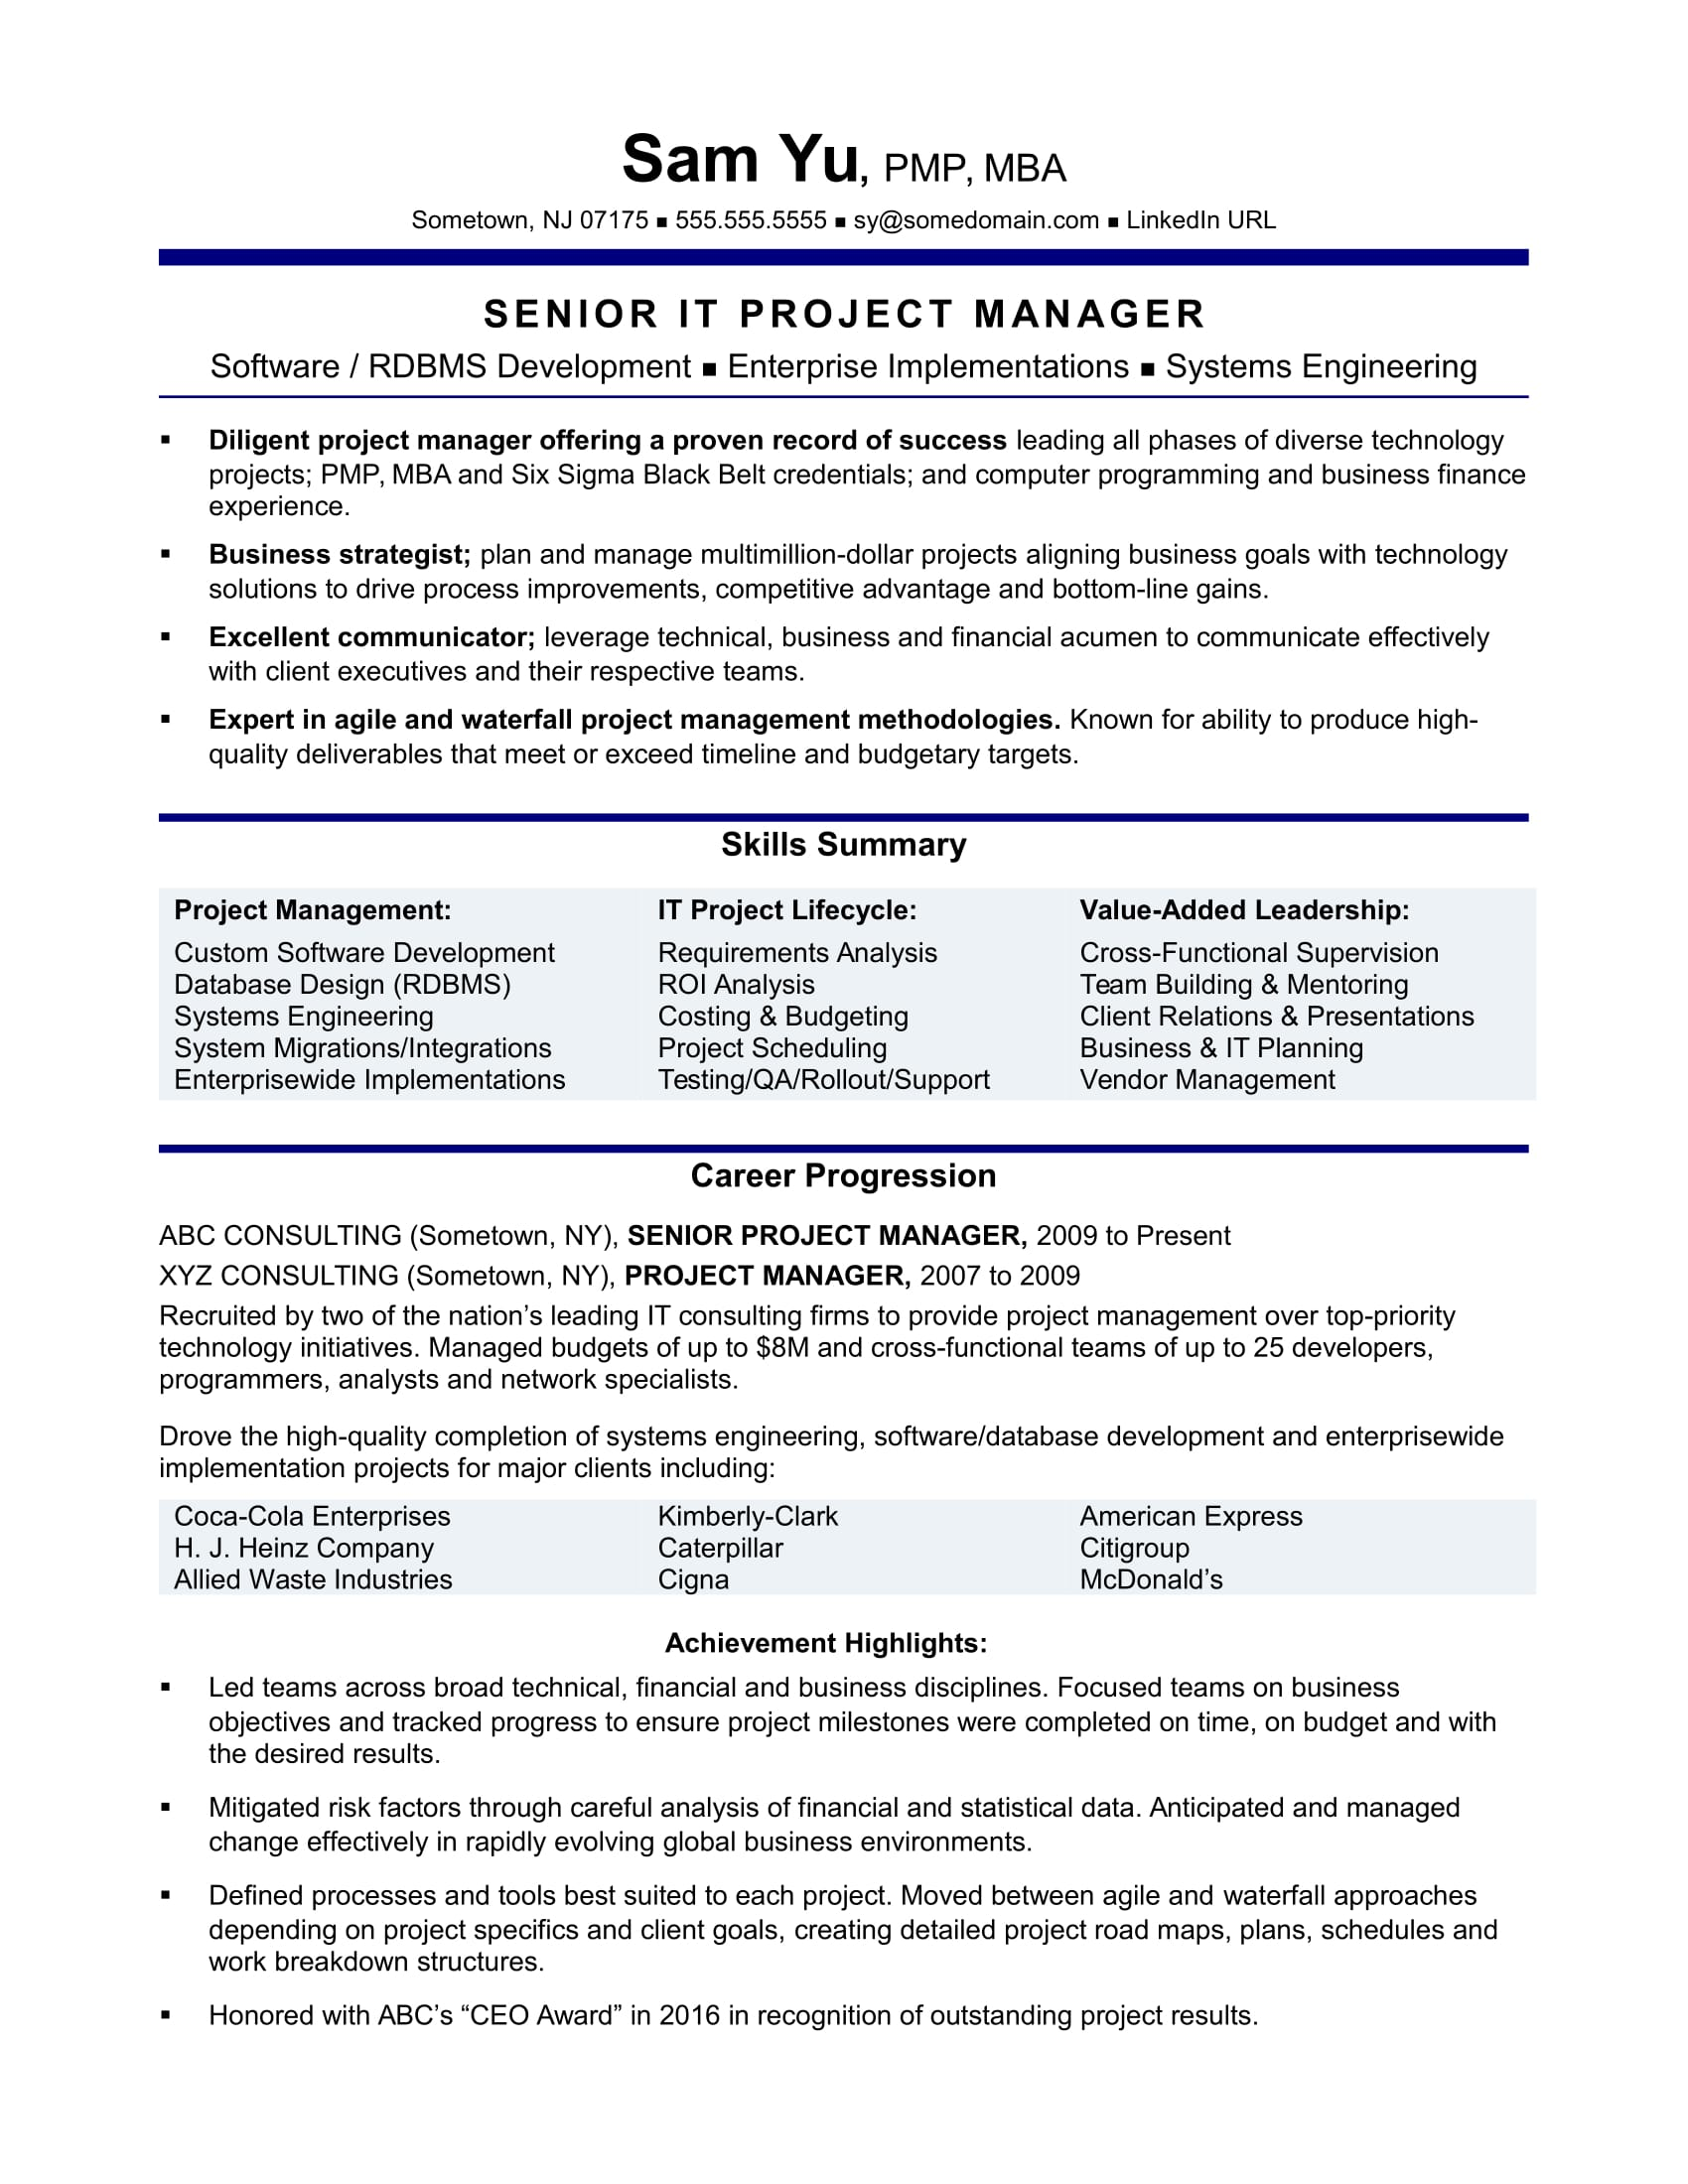 Charming Experienced IT Project Manager Resume Sample  Program Manager Resumes